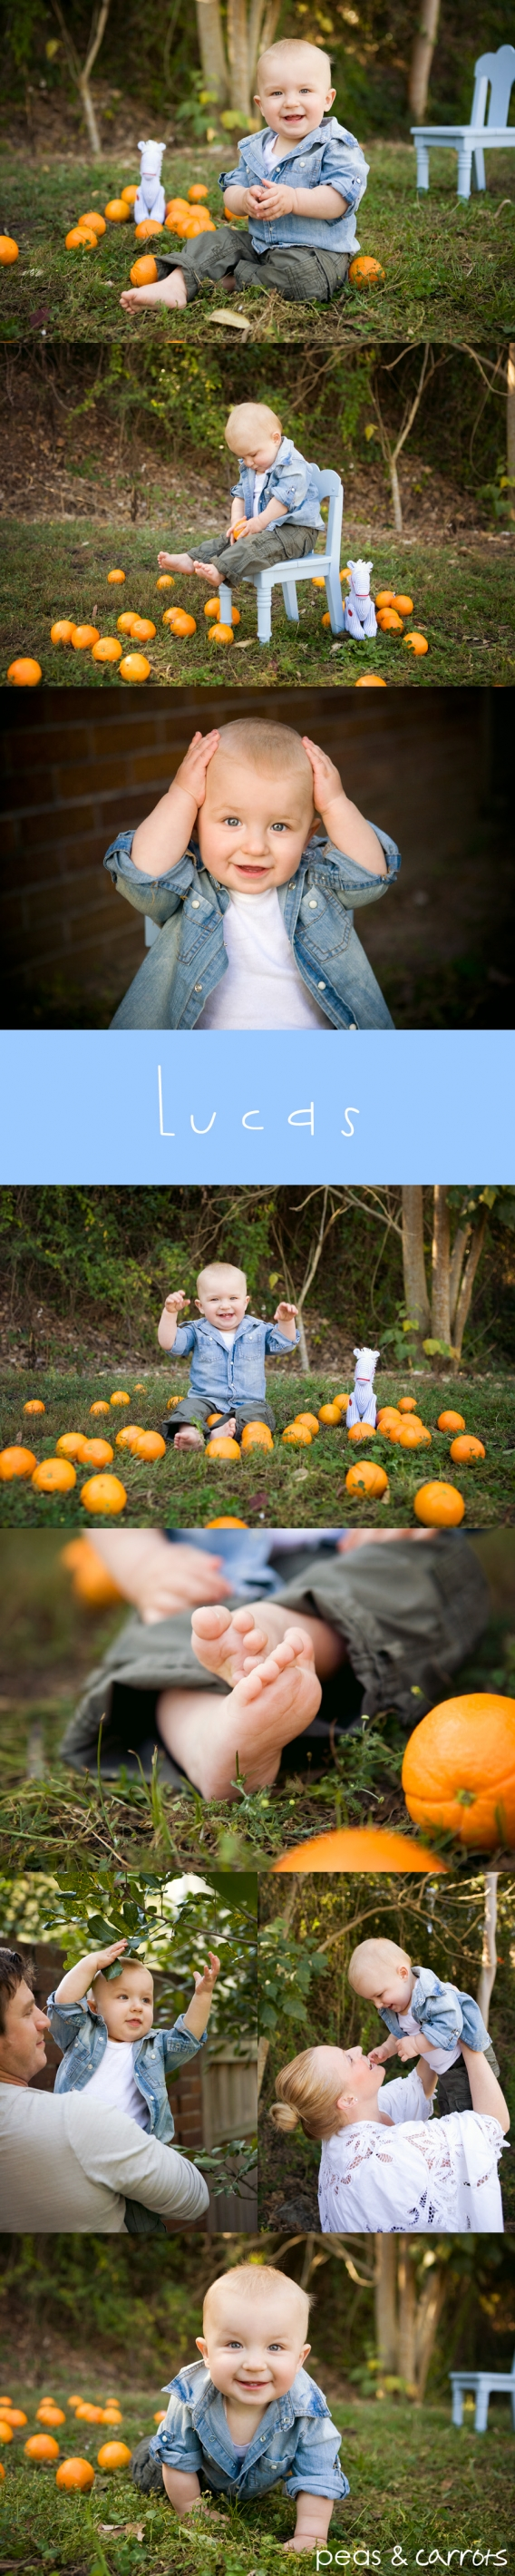 Brisbane Baby Photography - Peas + Carrots Photography